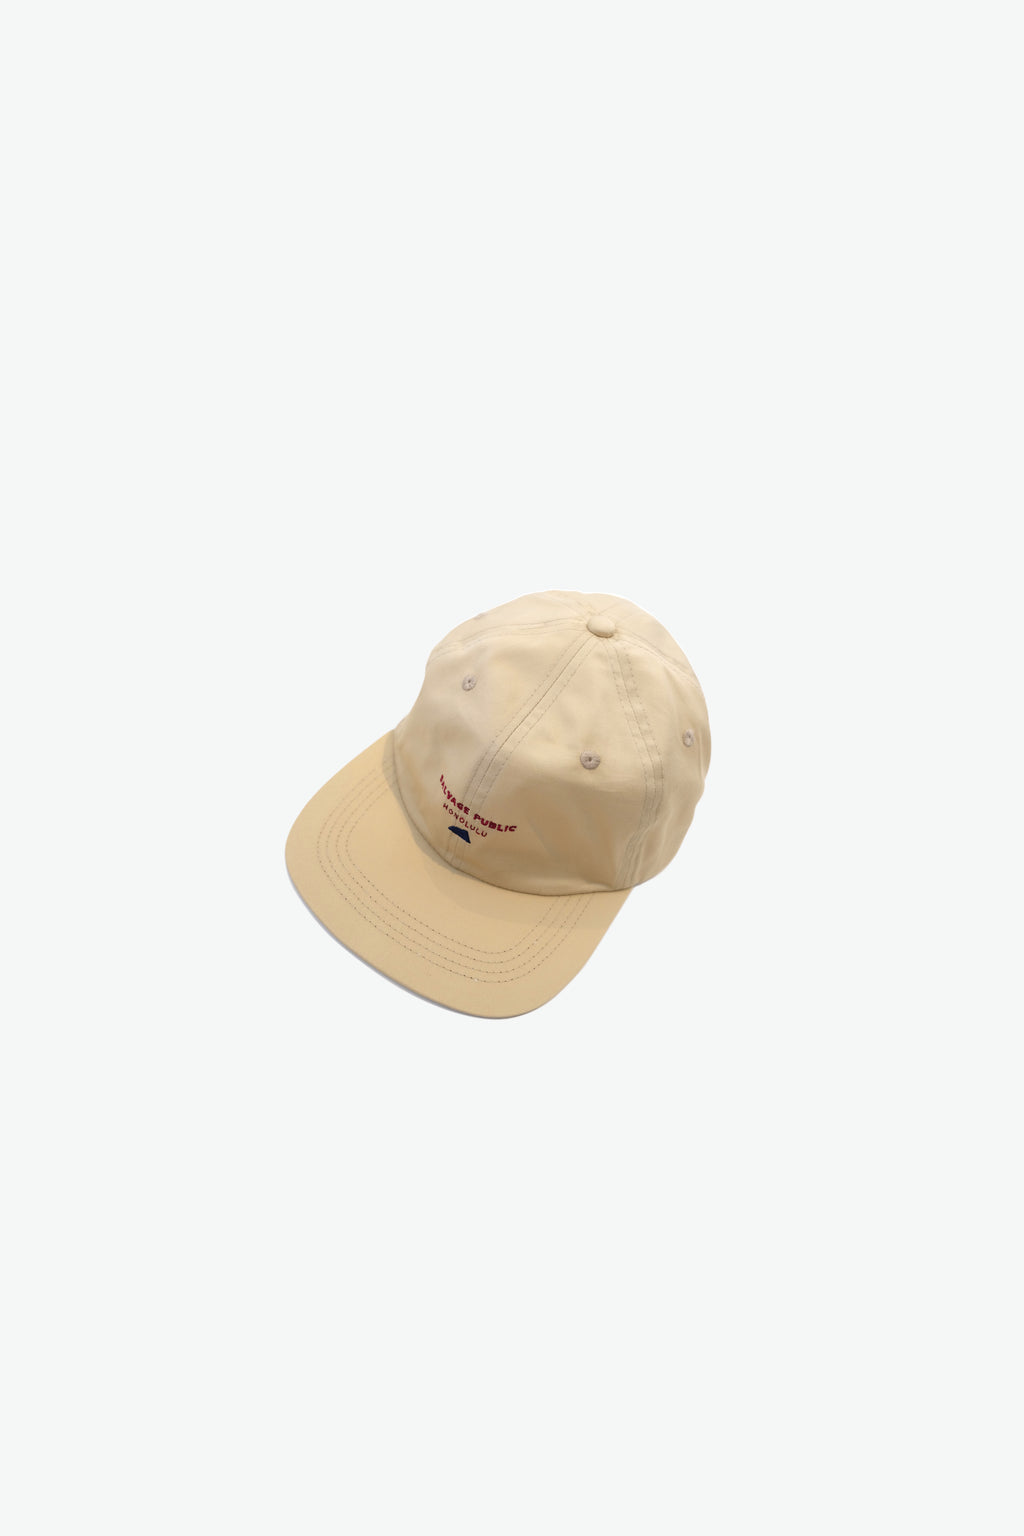 Hat - Pops, Unstructured 6-Panel - Sand